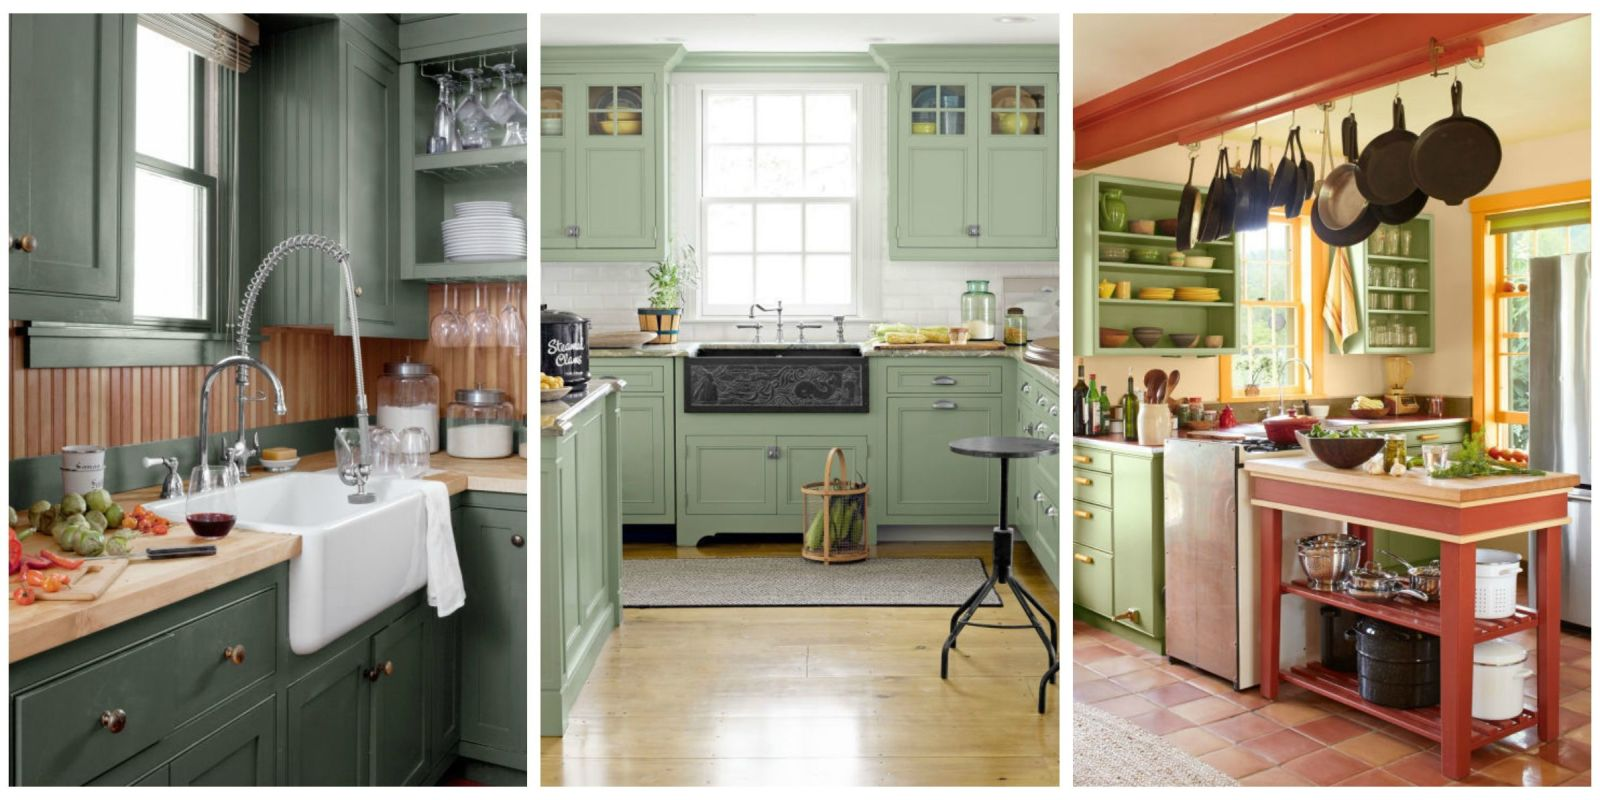 Green Cuisine Cafe 10 Green Kitchen Ideas Best Green Paint Colors For Kitchens